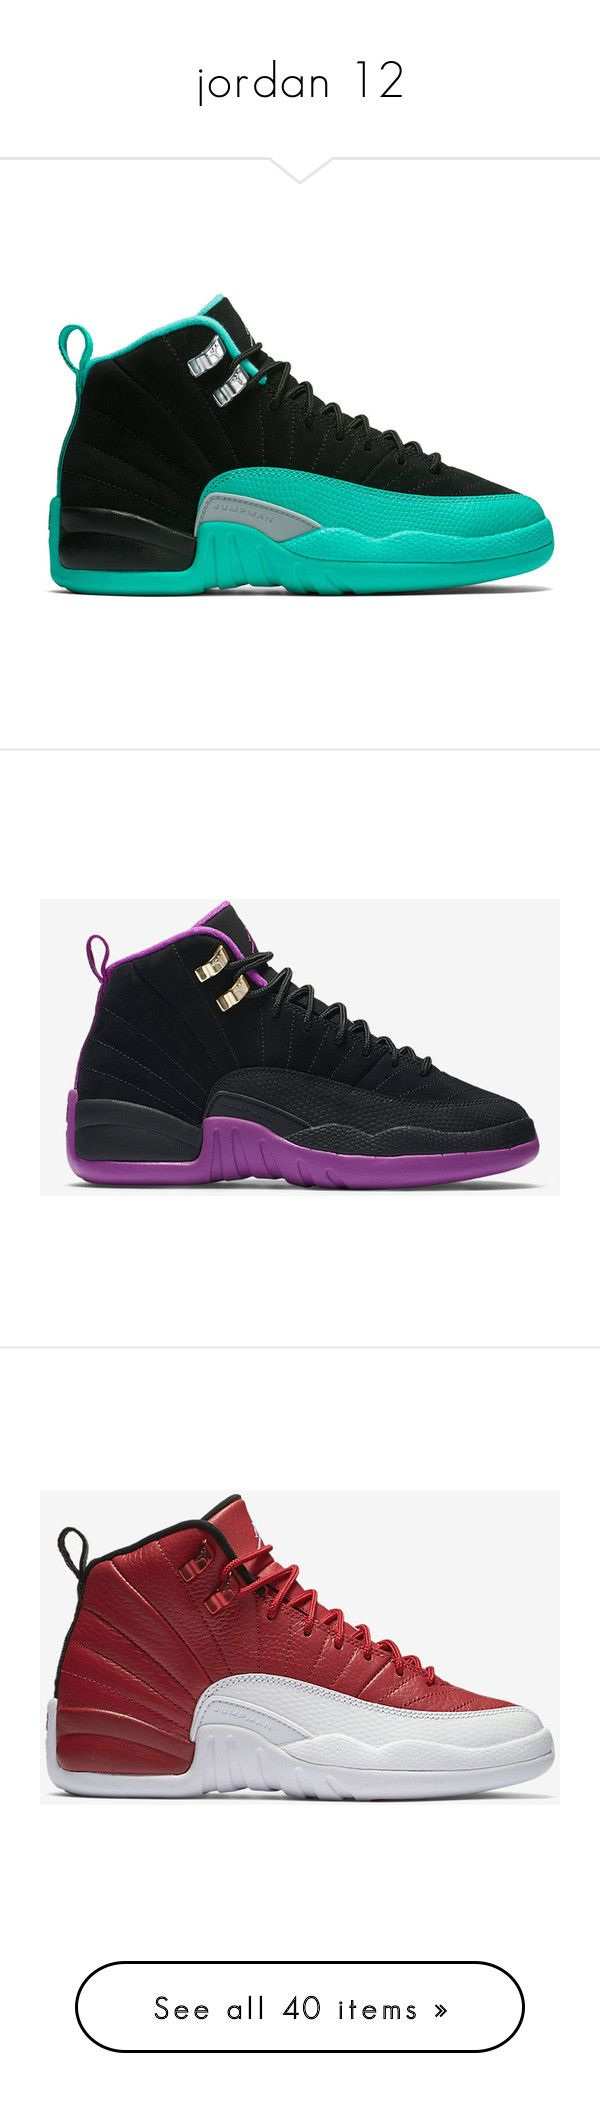 """jordan 12"" by doggydoddyfroggymoppy ❤ liked on Polyvore featuring shoes, jordan 12, jordans, sneakers, jordan, items, men's fashion, men's shoes, men's sneakers and mens retro shoes"